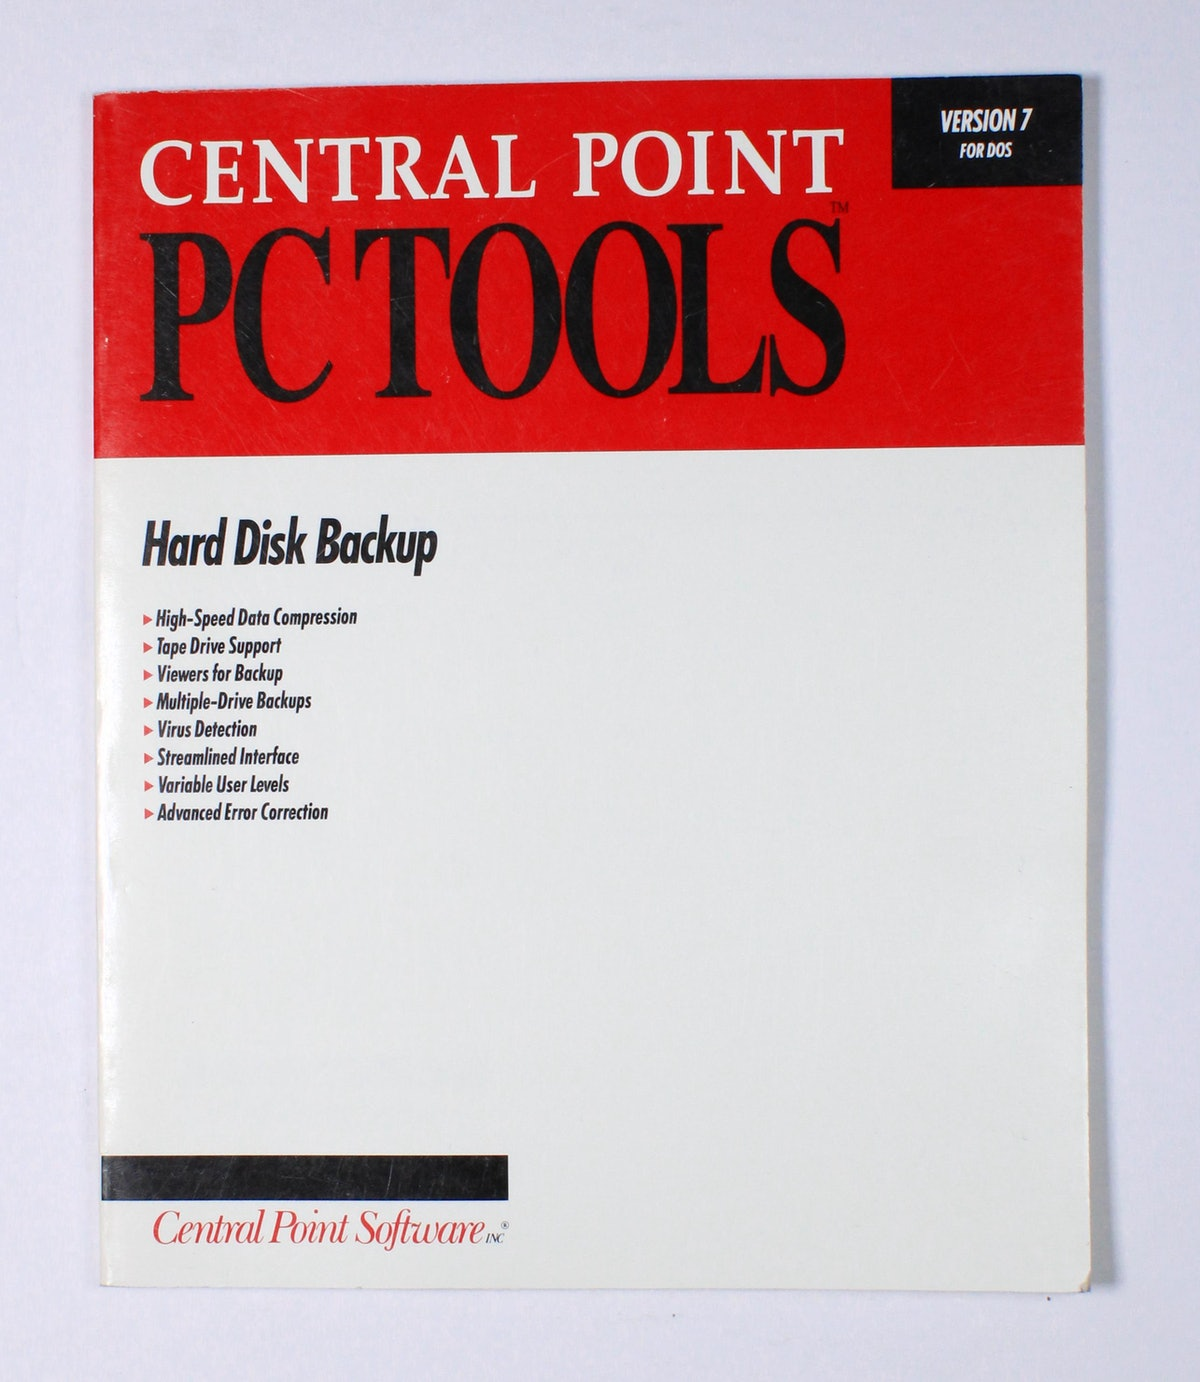 Central Point PC Tools: Hard Disk Backup